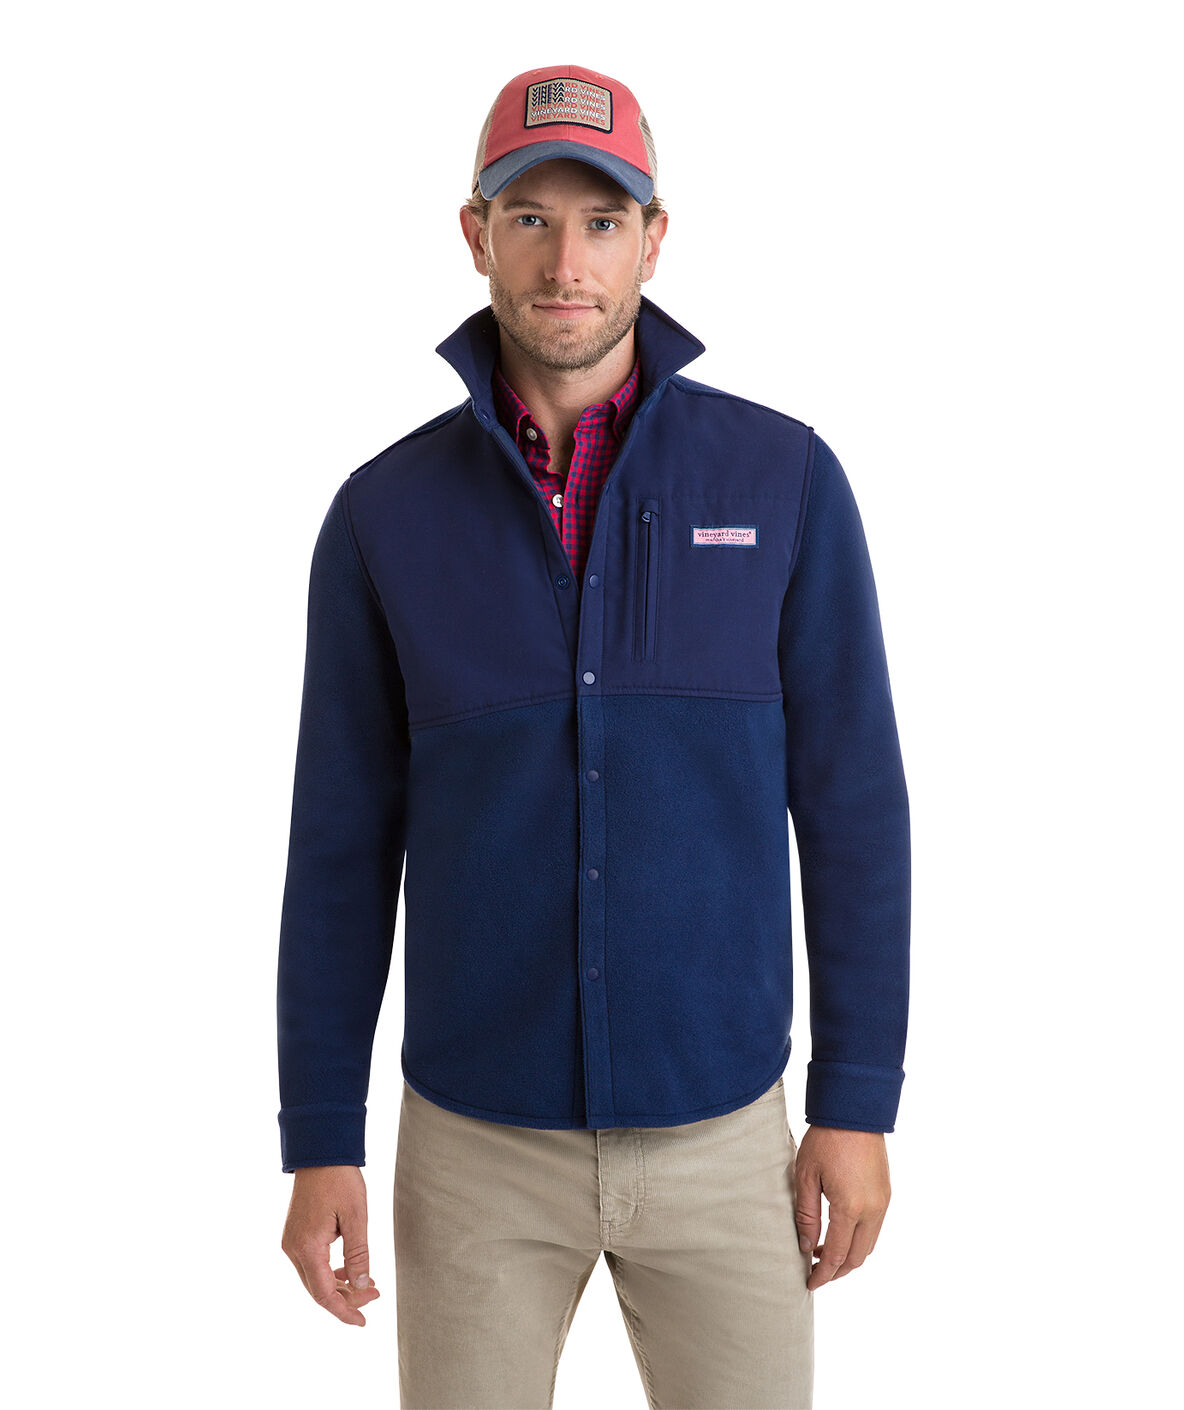 Shop Shirt Jacket Snap Fleece At Vineyard Vines